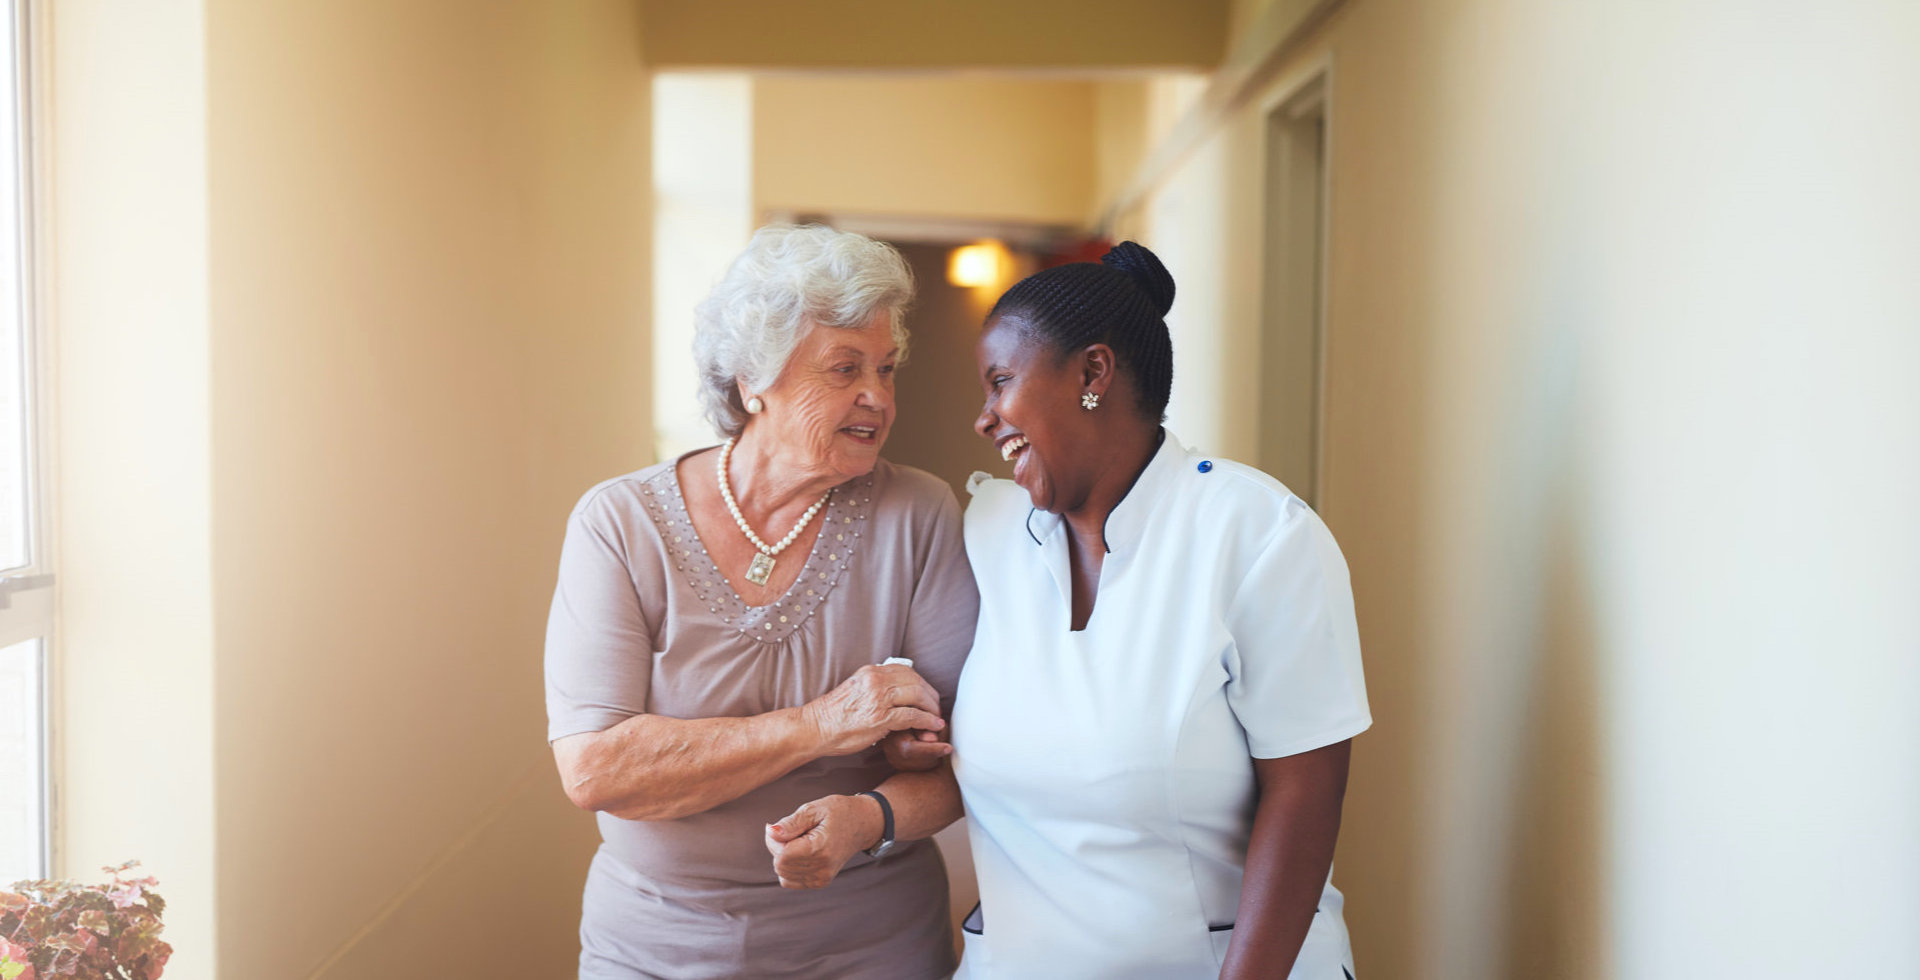 caregiver and elderly woman are walking